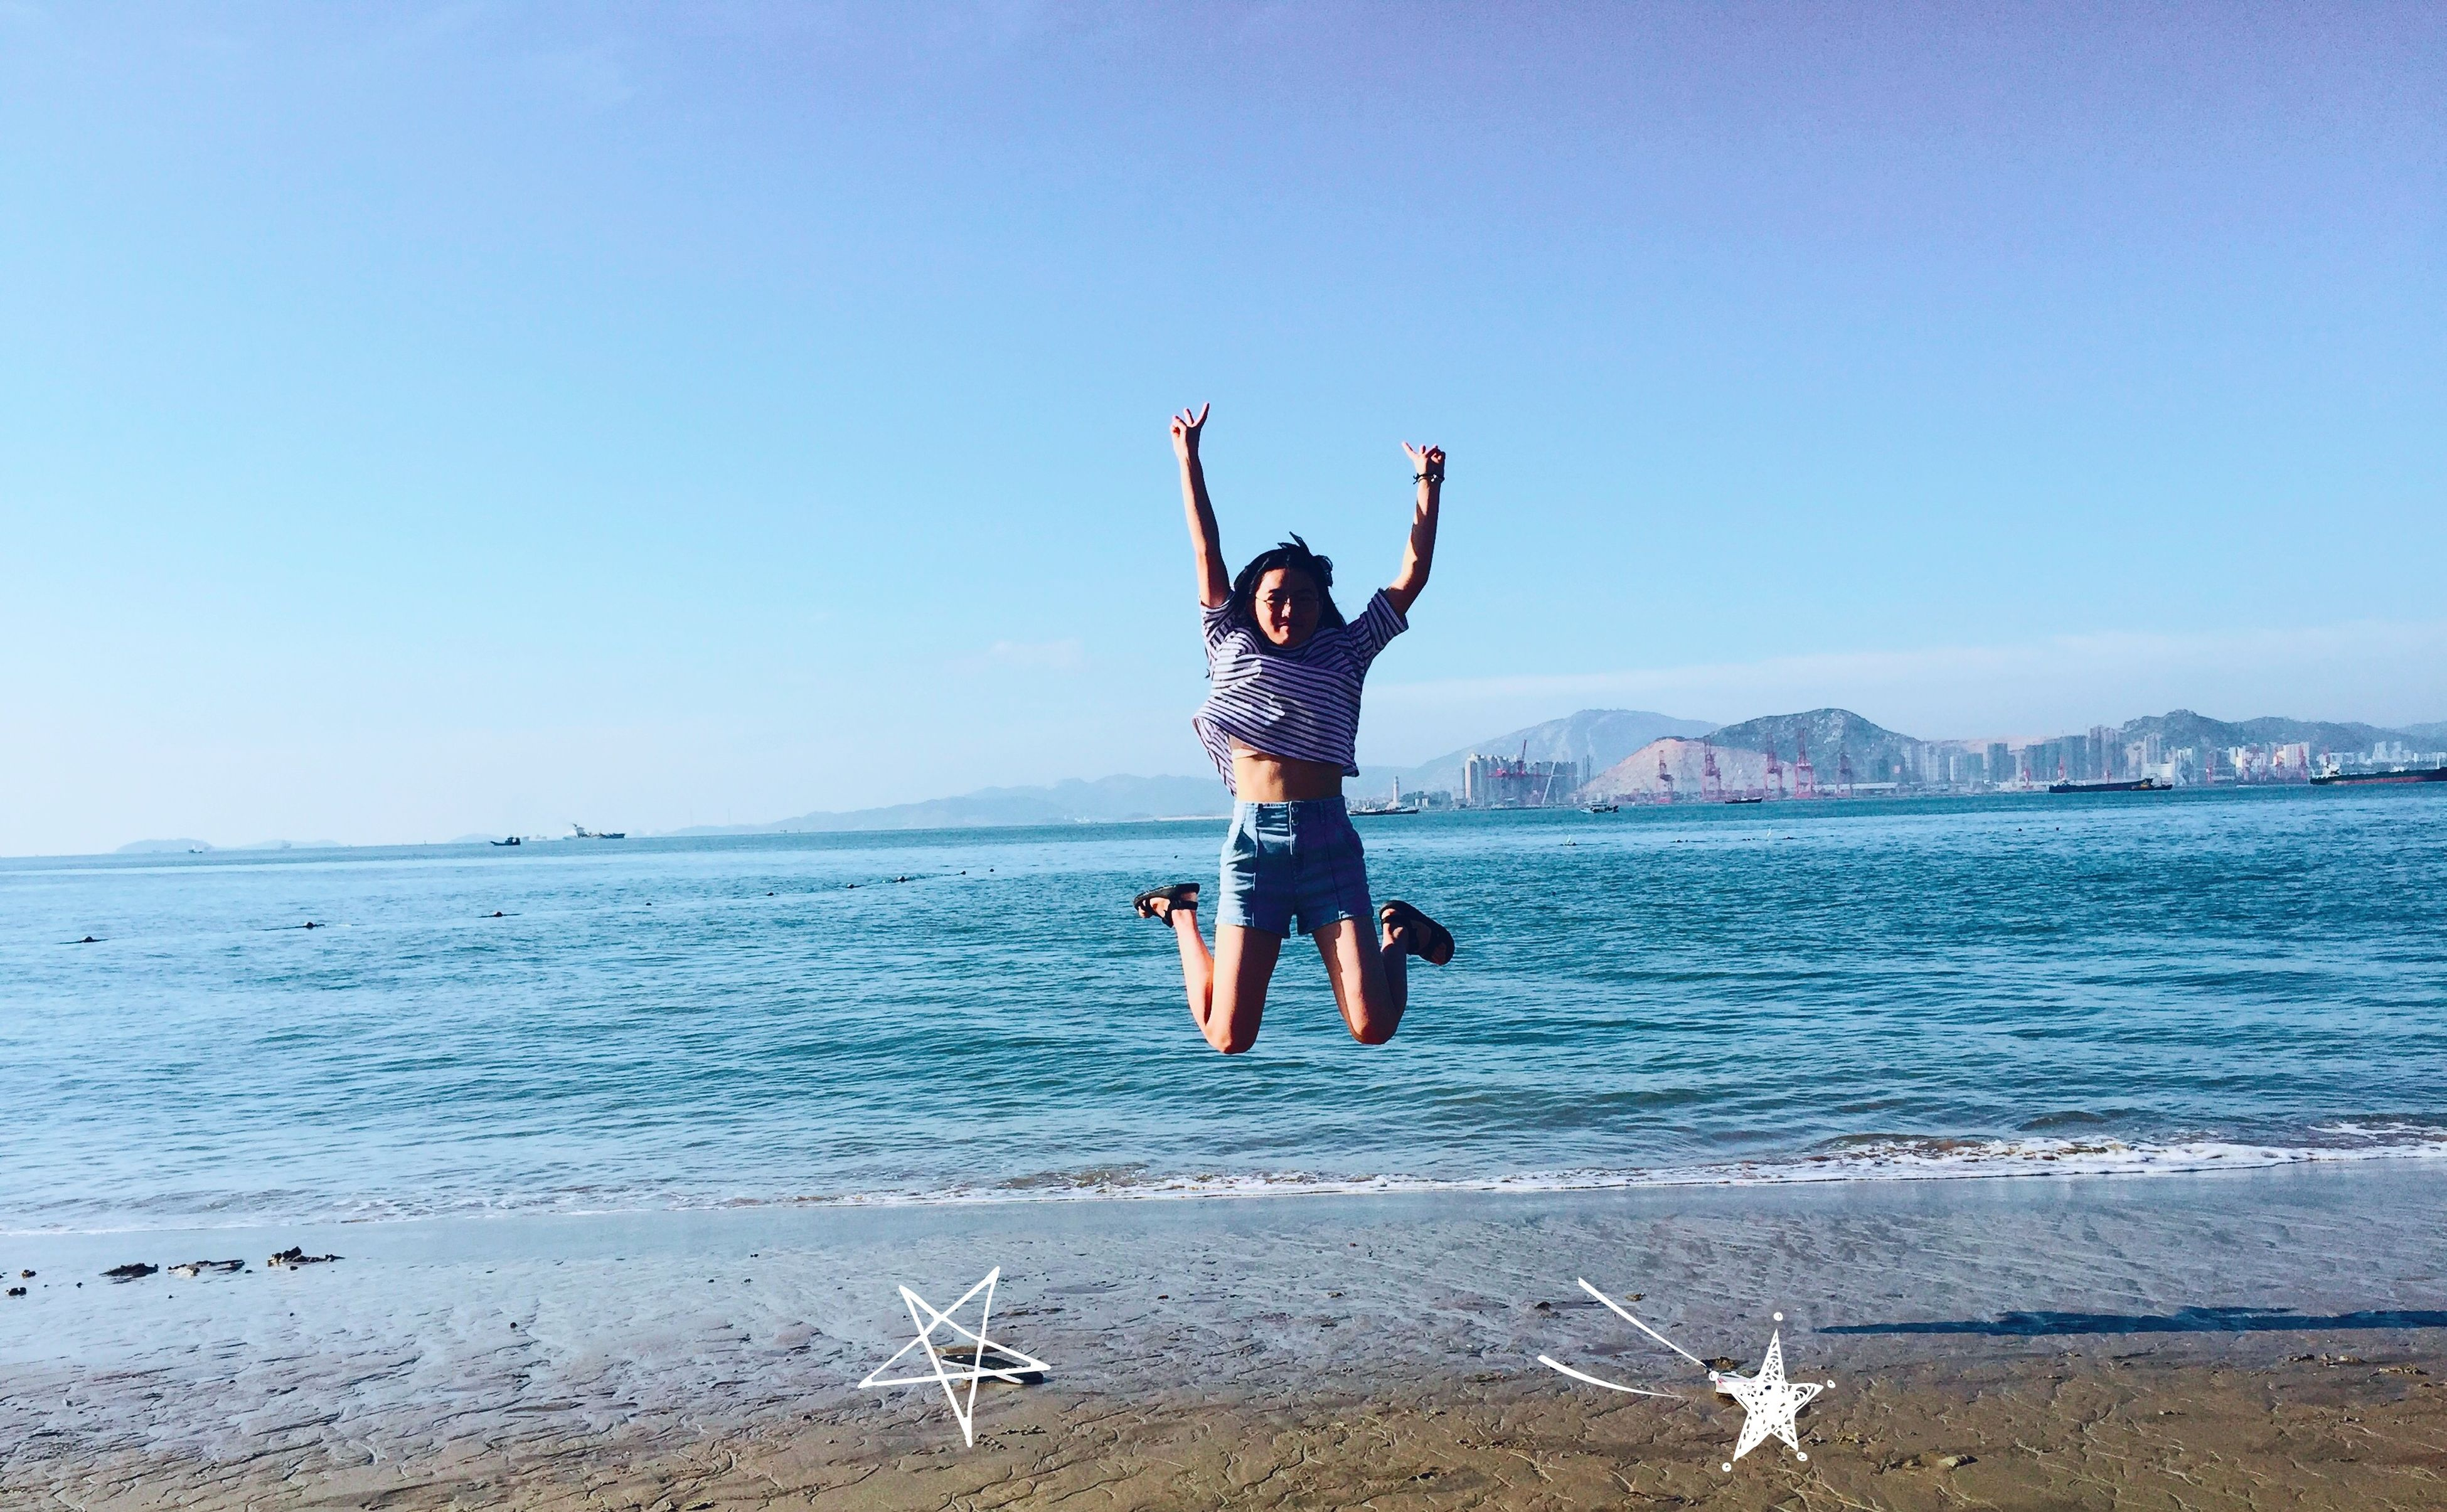 water, sea, clear sky, beach, full length, copy space, lifestyles, leisure activity, shore, vacations, blue, young adult, enjoyment, fun, sand, jumping, mid-air, standing